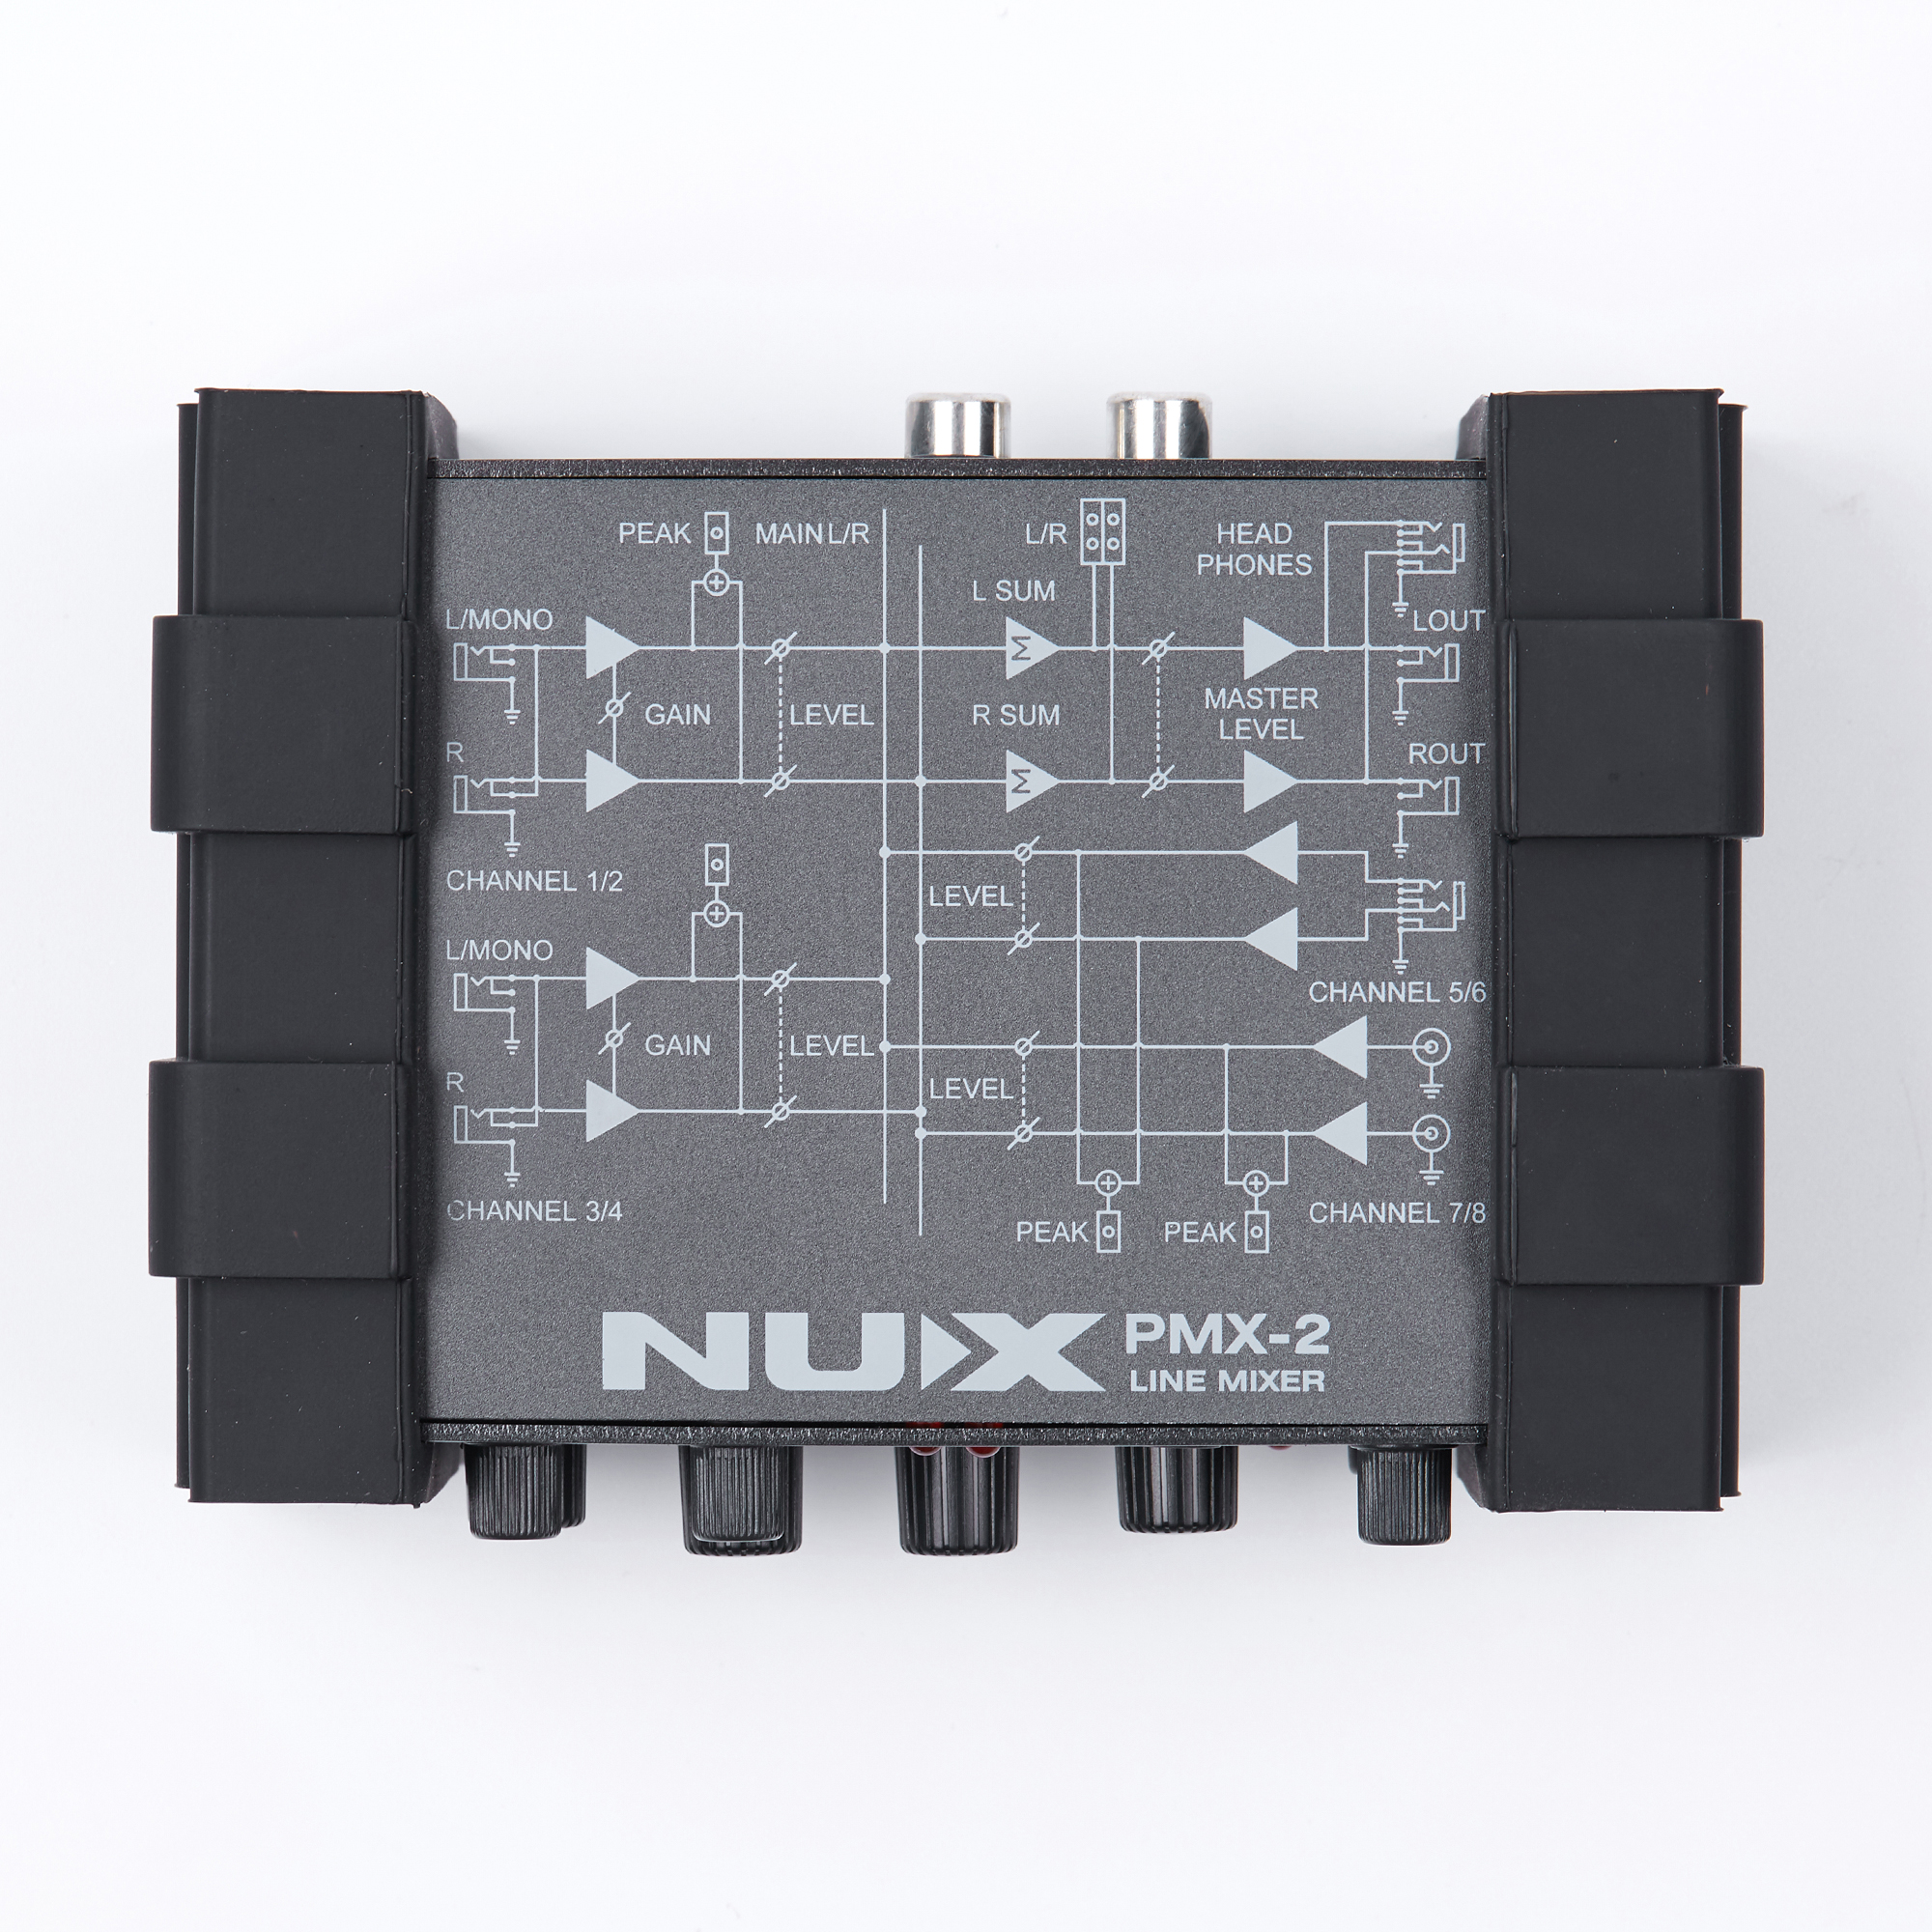 Gain Control 8 Inputs and 2 Outputs NUX PMX-2 Multi-Channel Mini Mixer 30 Musical Instruments Accessories for Guitar Bass Player lefard столовый сервиз craig набор